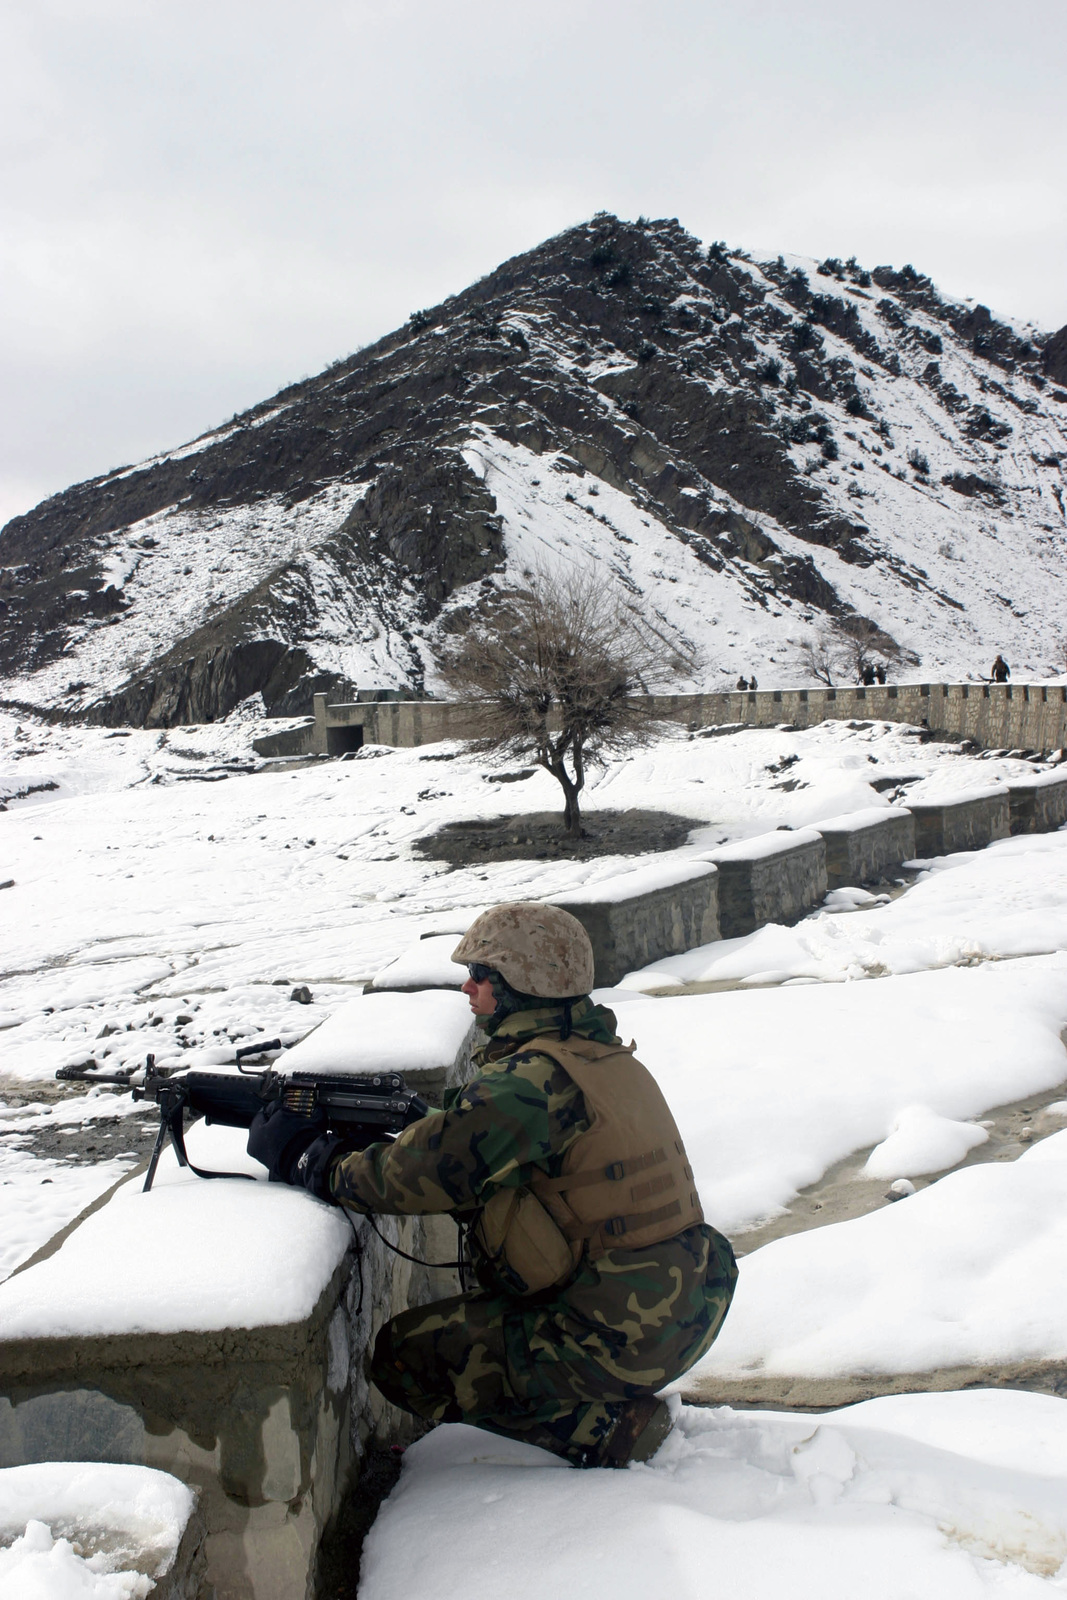 U.S. Marine Corps PFC. Adam Brantley, a rifleman with Weapons Company, 3rd Battalion, 3rd Marine Regiment, provides security behind his FNMI 5.56mm M249 Squad Automatic Weapon (SAW) during on a long security halt in the Khowst-Gardez Pass, Afghanistan, on Dec. 29, 2004.  These Marines are conducting security and stabilization operations in support of Operation Enduring Freedom.  (U.S. Marine Corps PHOTO by CPL James L. Yarboro) (Released)